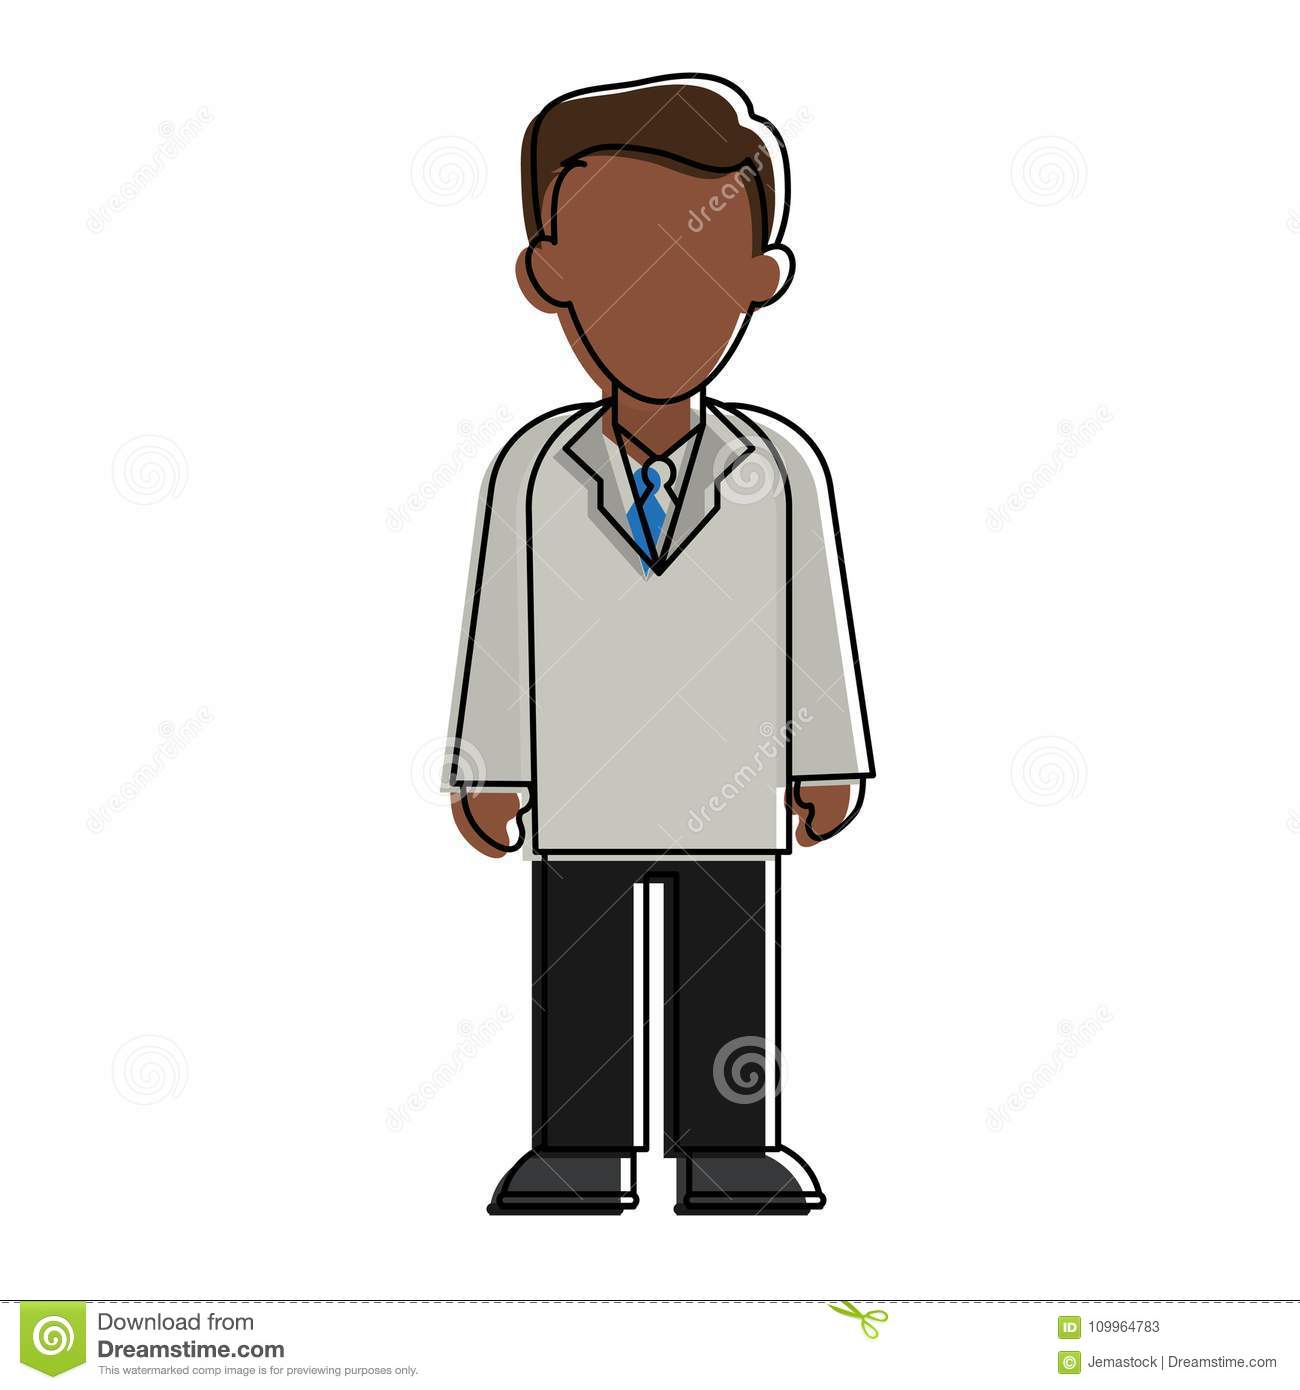 Doctor With Gown Faceless Avatar Stock Vector - Illustration of icon ...